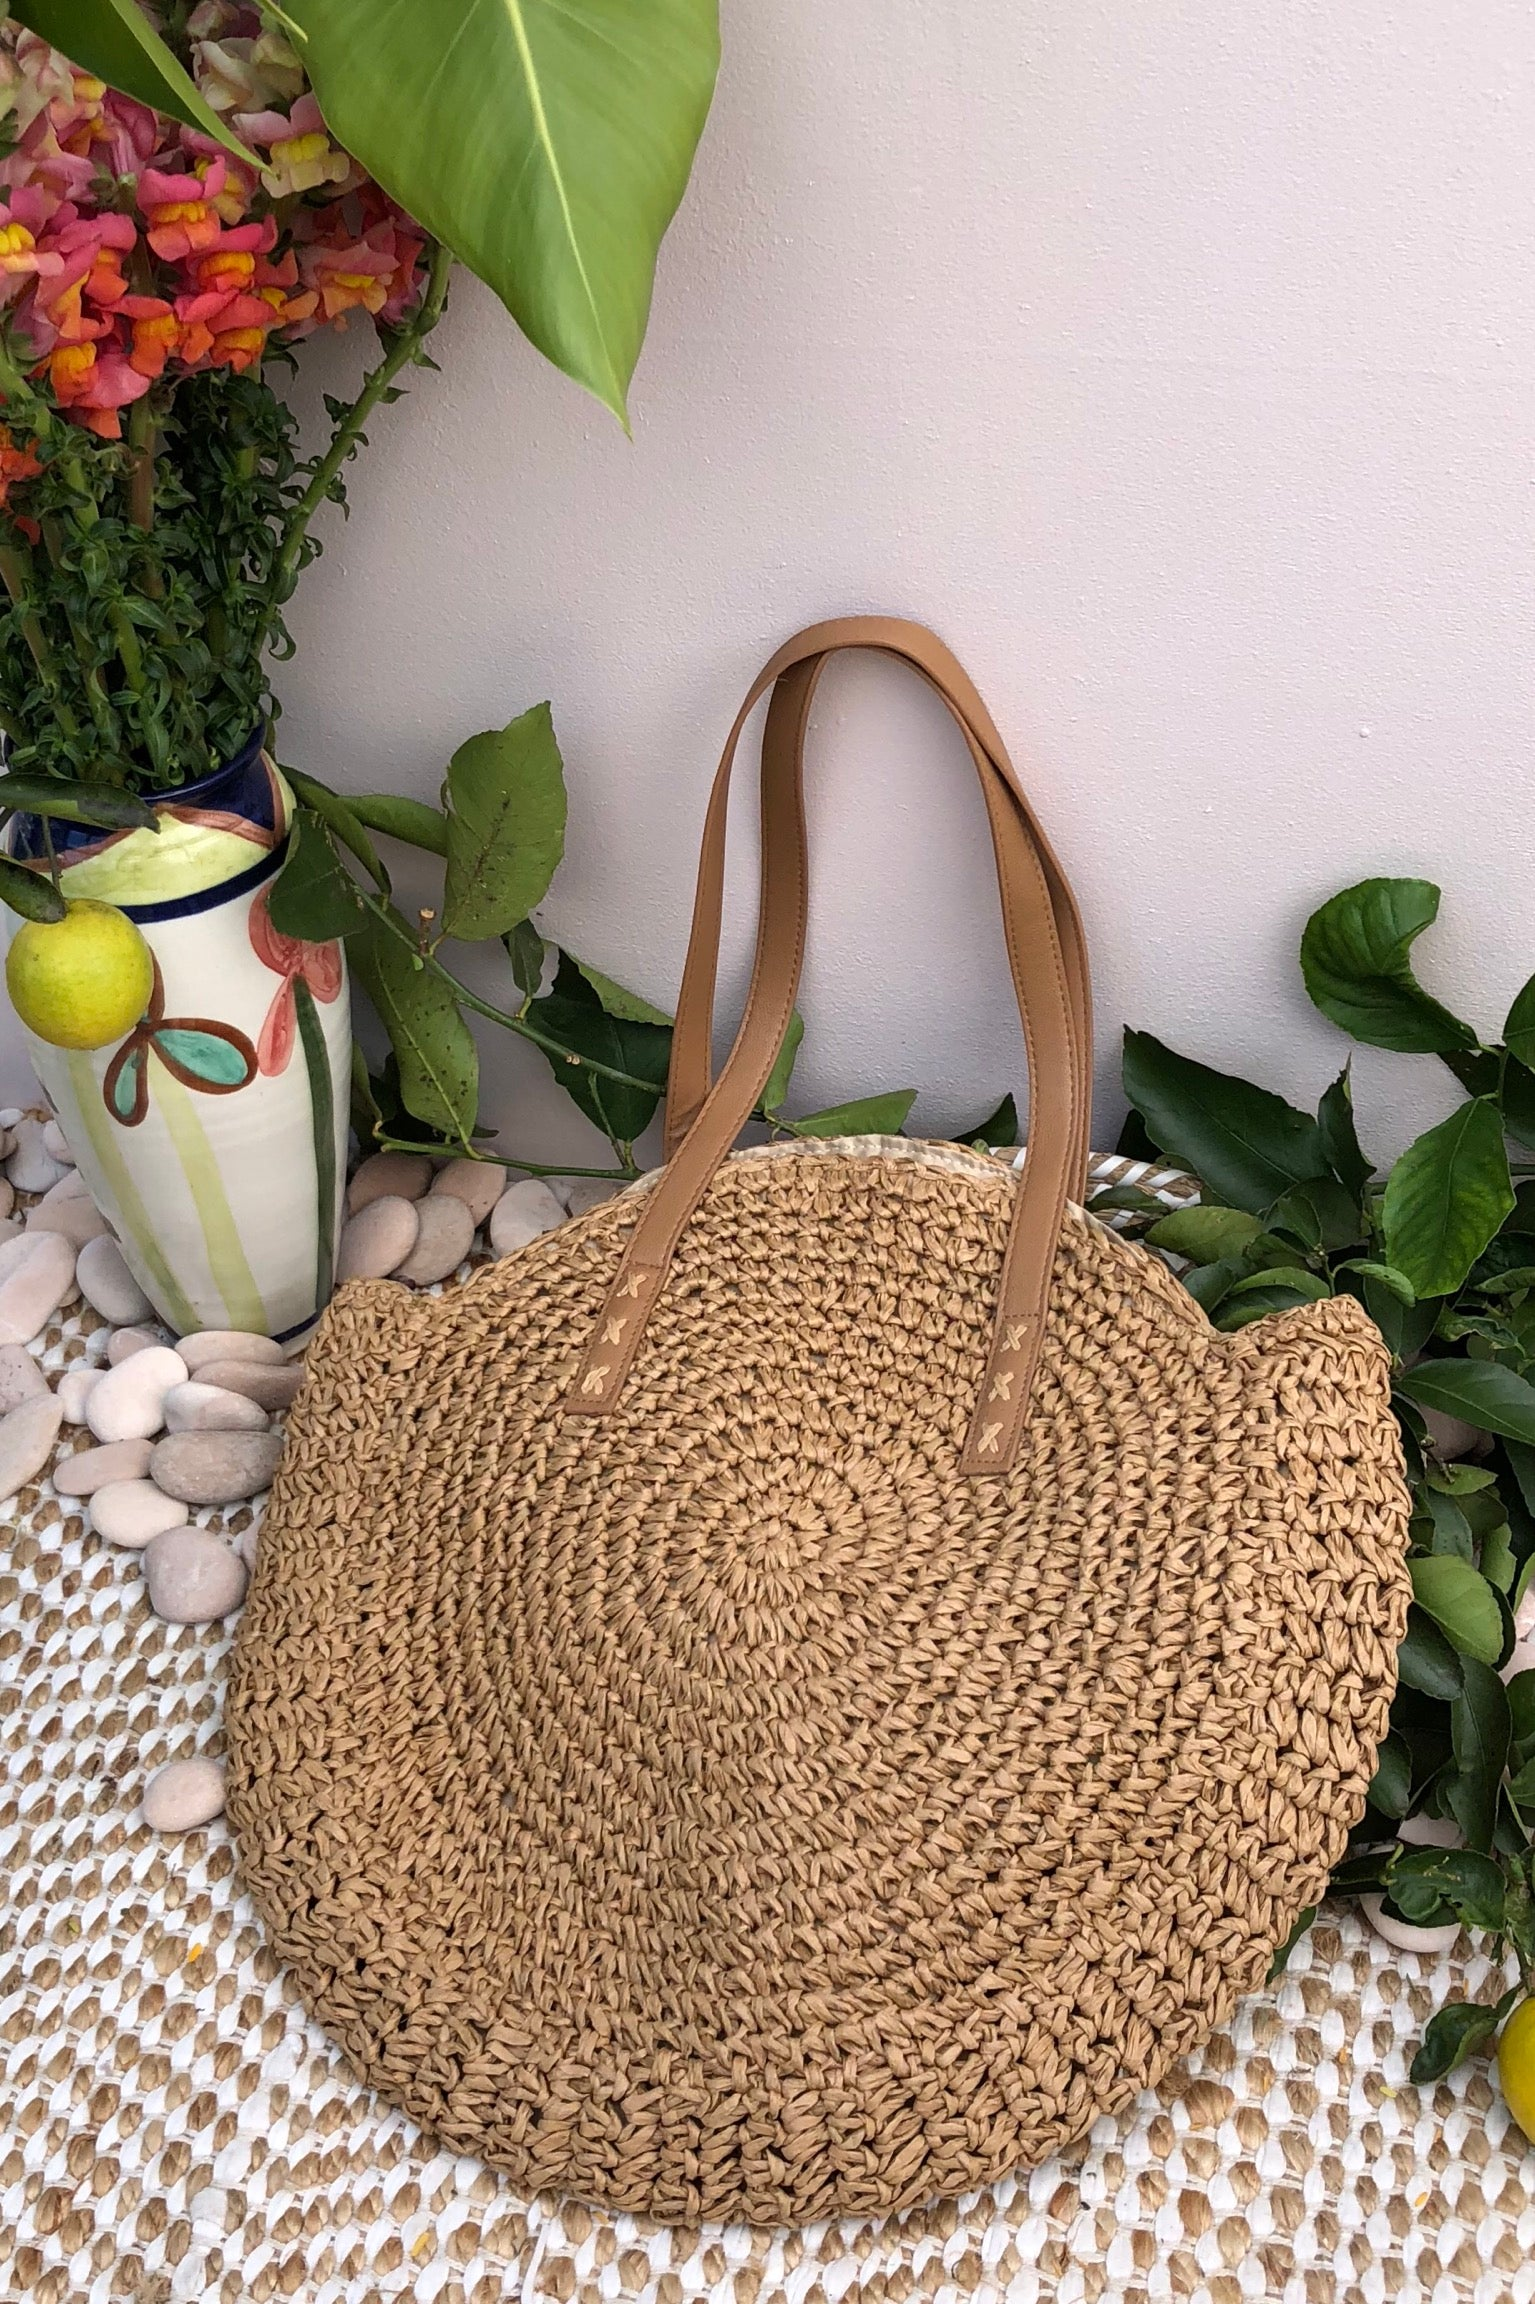 Bag Ava Pomona in Cream Straw large round beach bohemian bag with a retro vegan leather handle